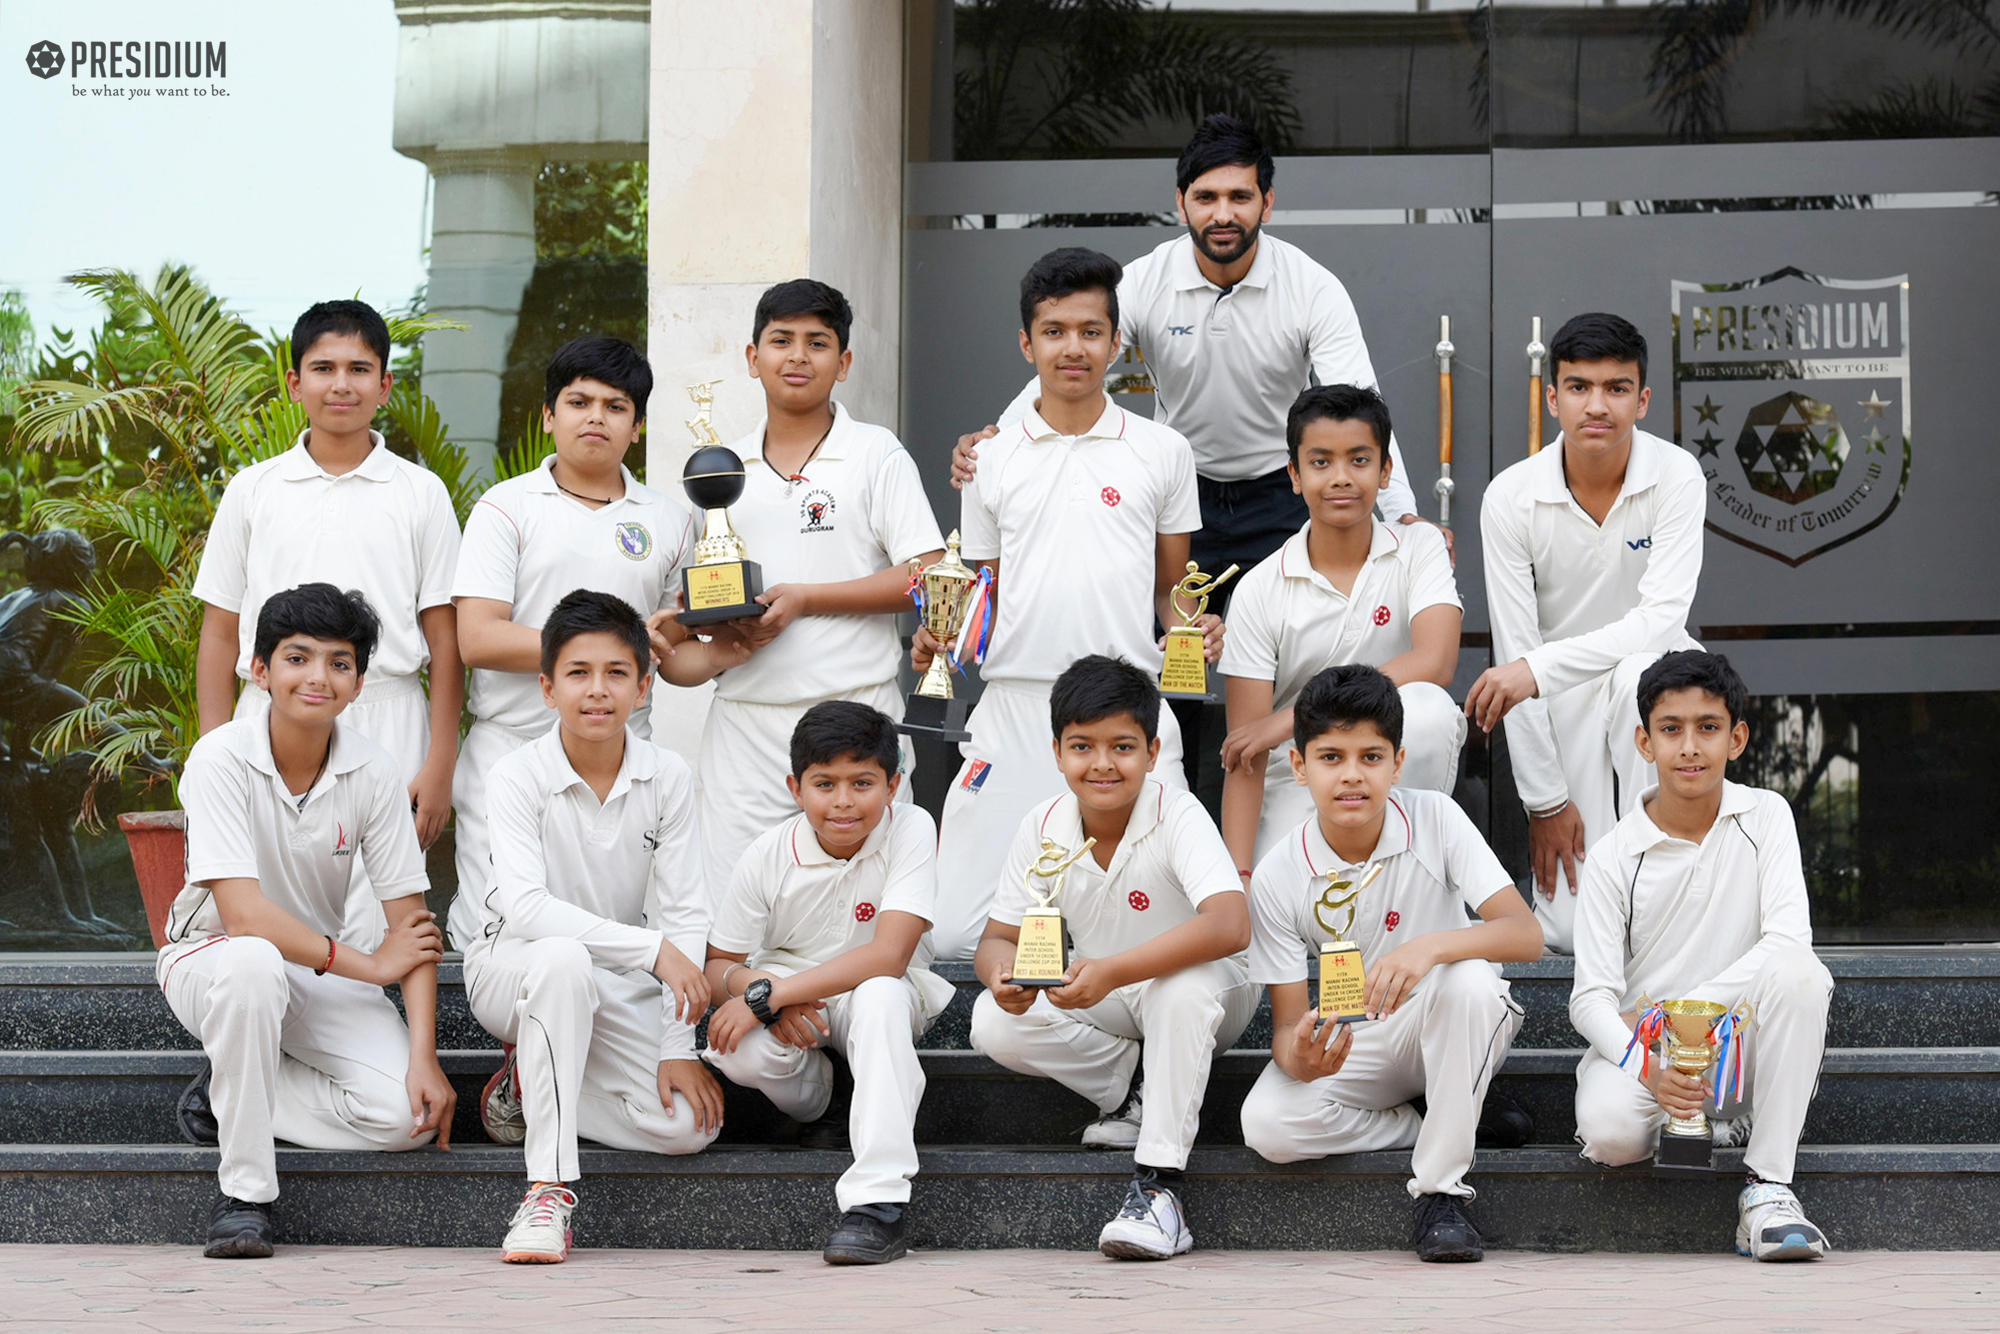 YOUNG CRICKETERS HIT THE WINNING RUNS AT INTERSCHOOL COMPETITION!